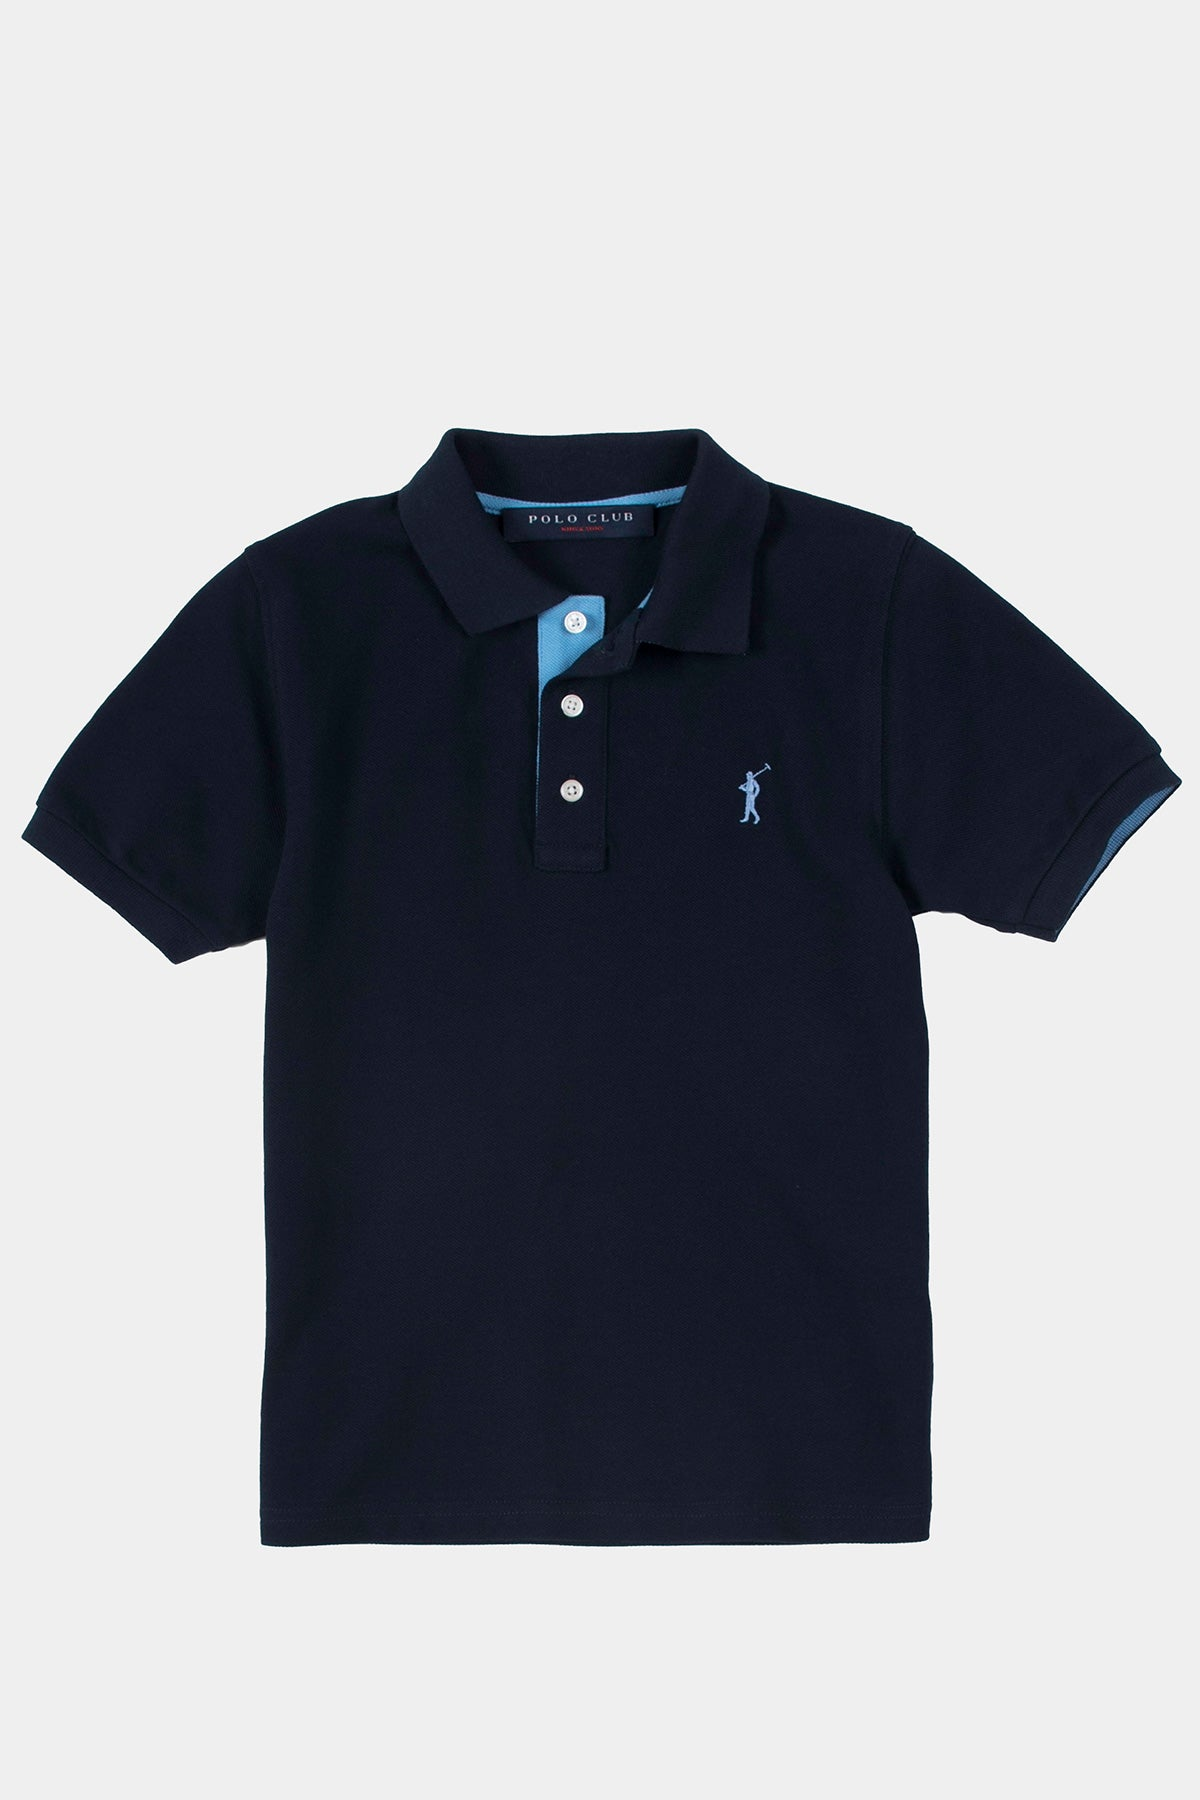 Boy's polo shirt navy blue